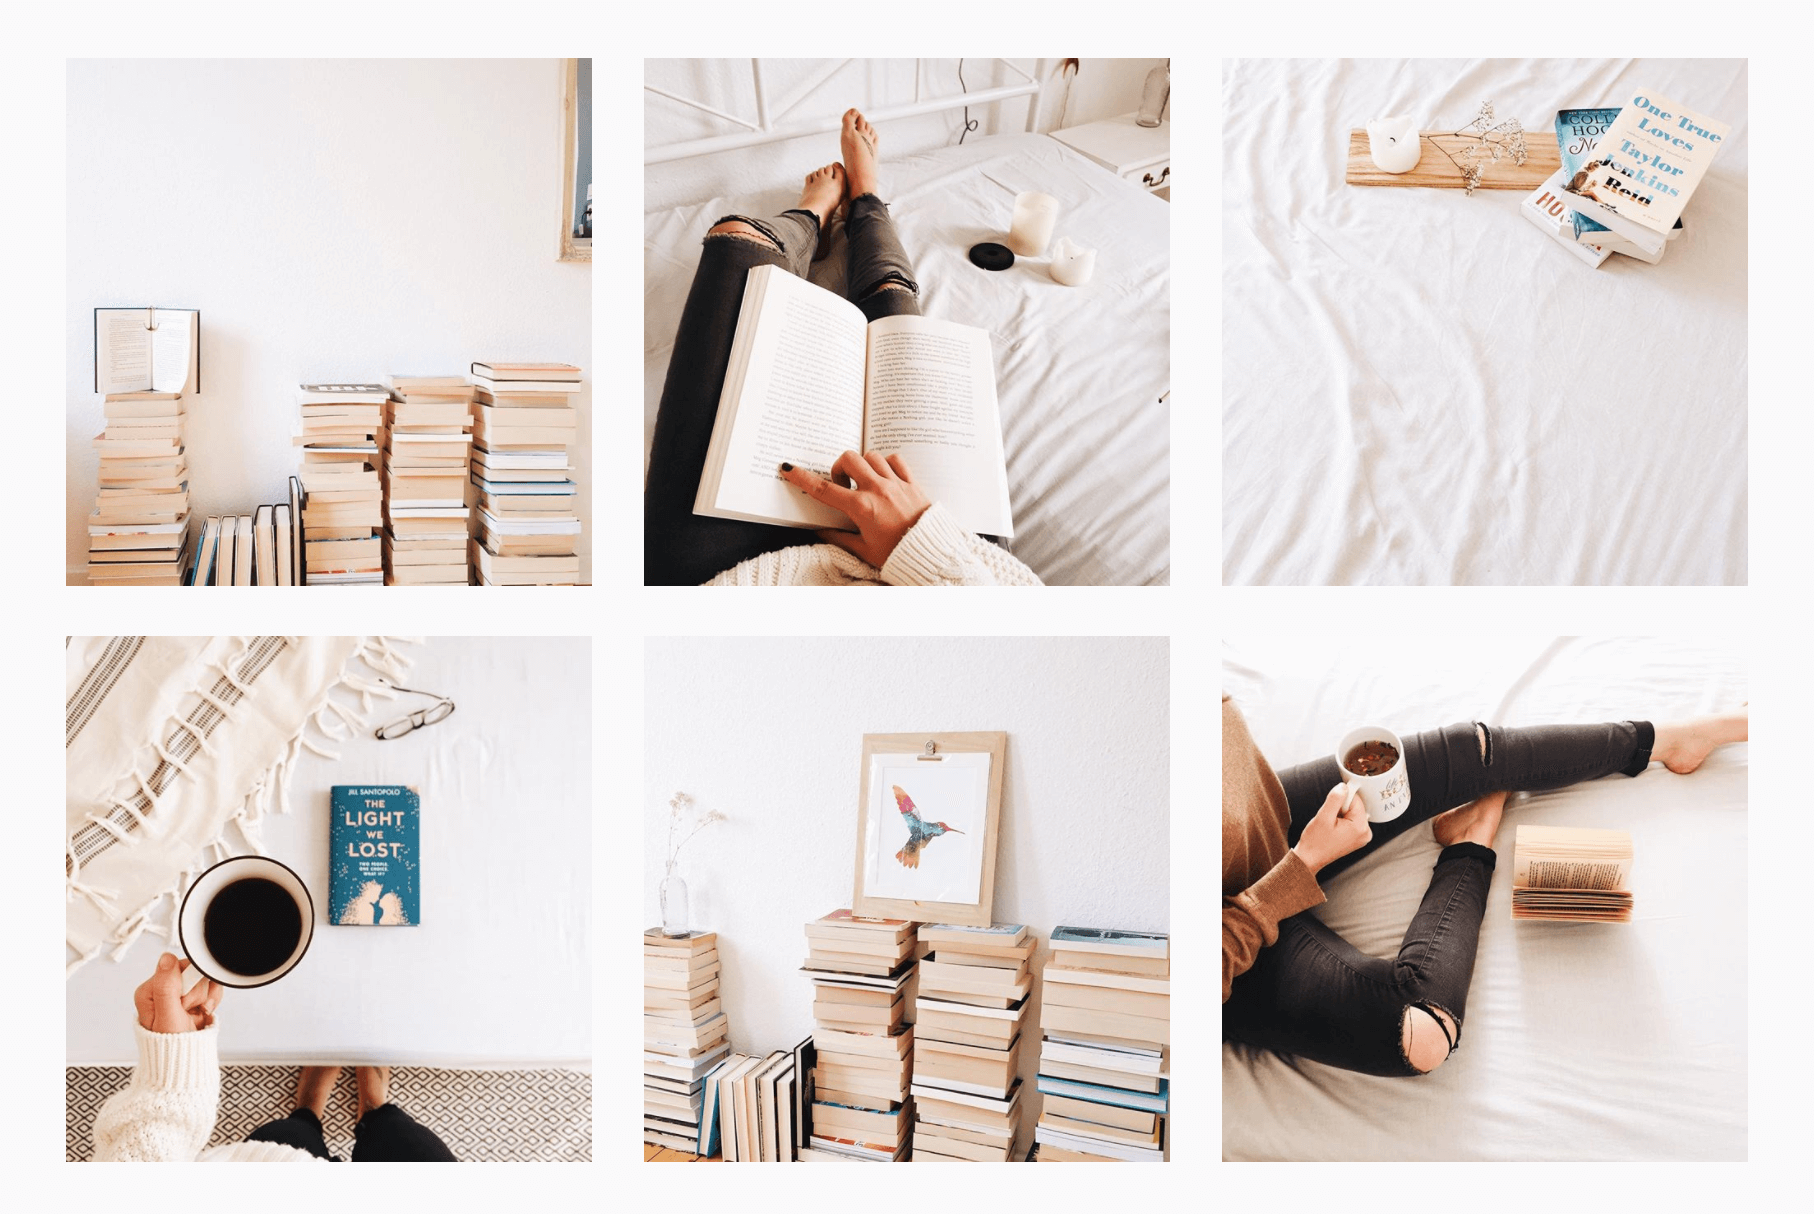 snippet of thebibliotheque's bookstagram theme